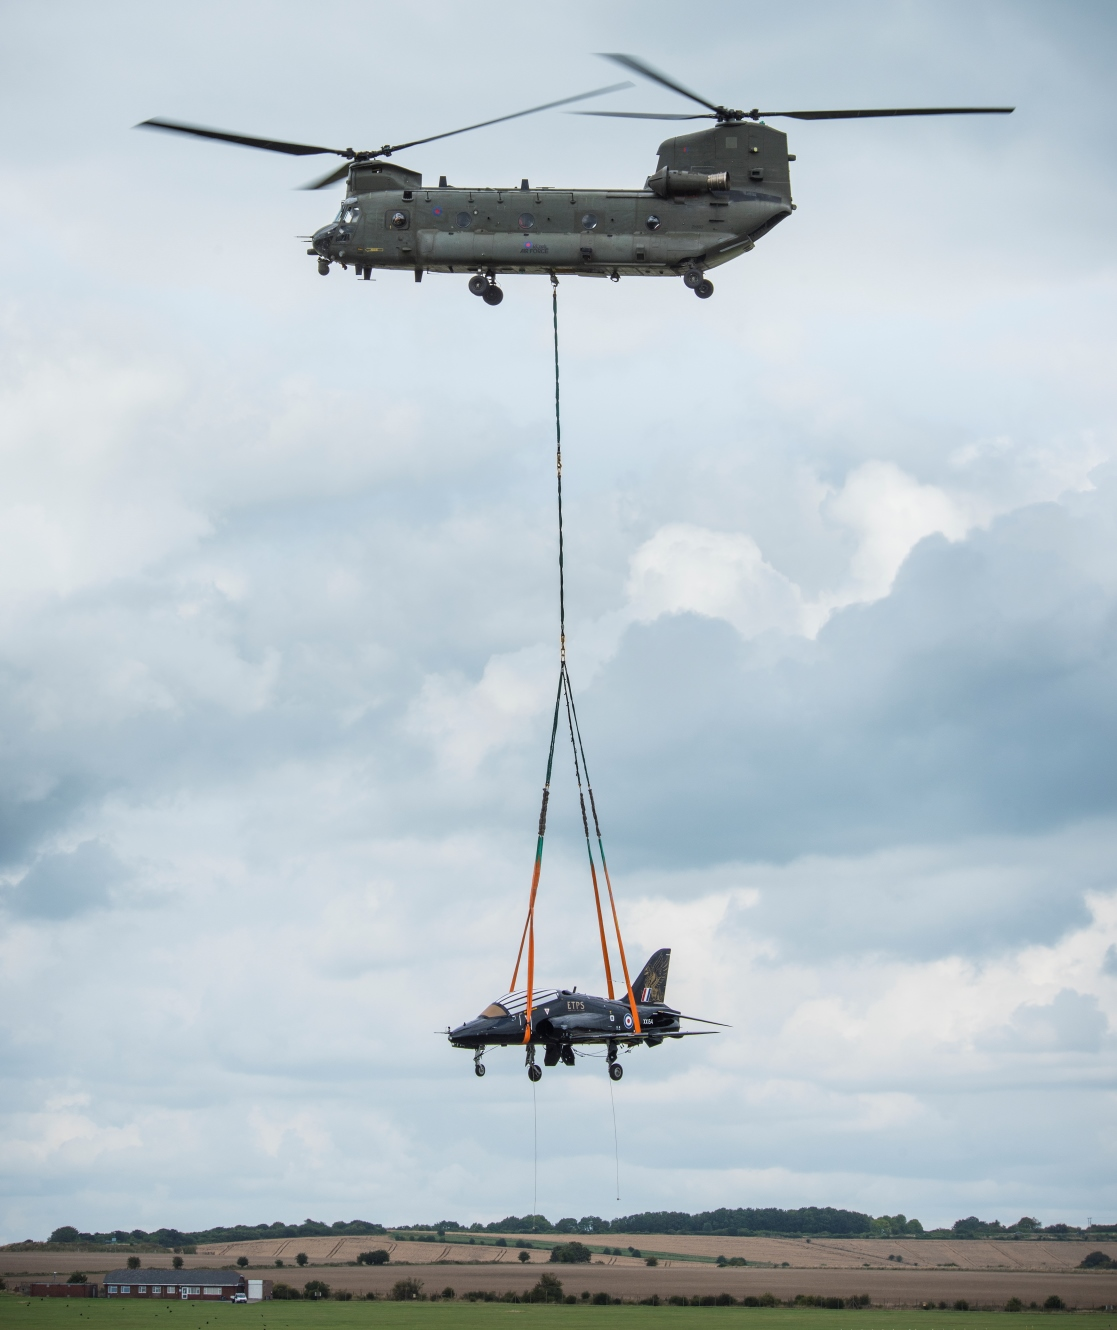 Hawk XX154 being carried by a Chinook